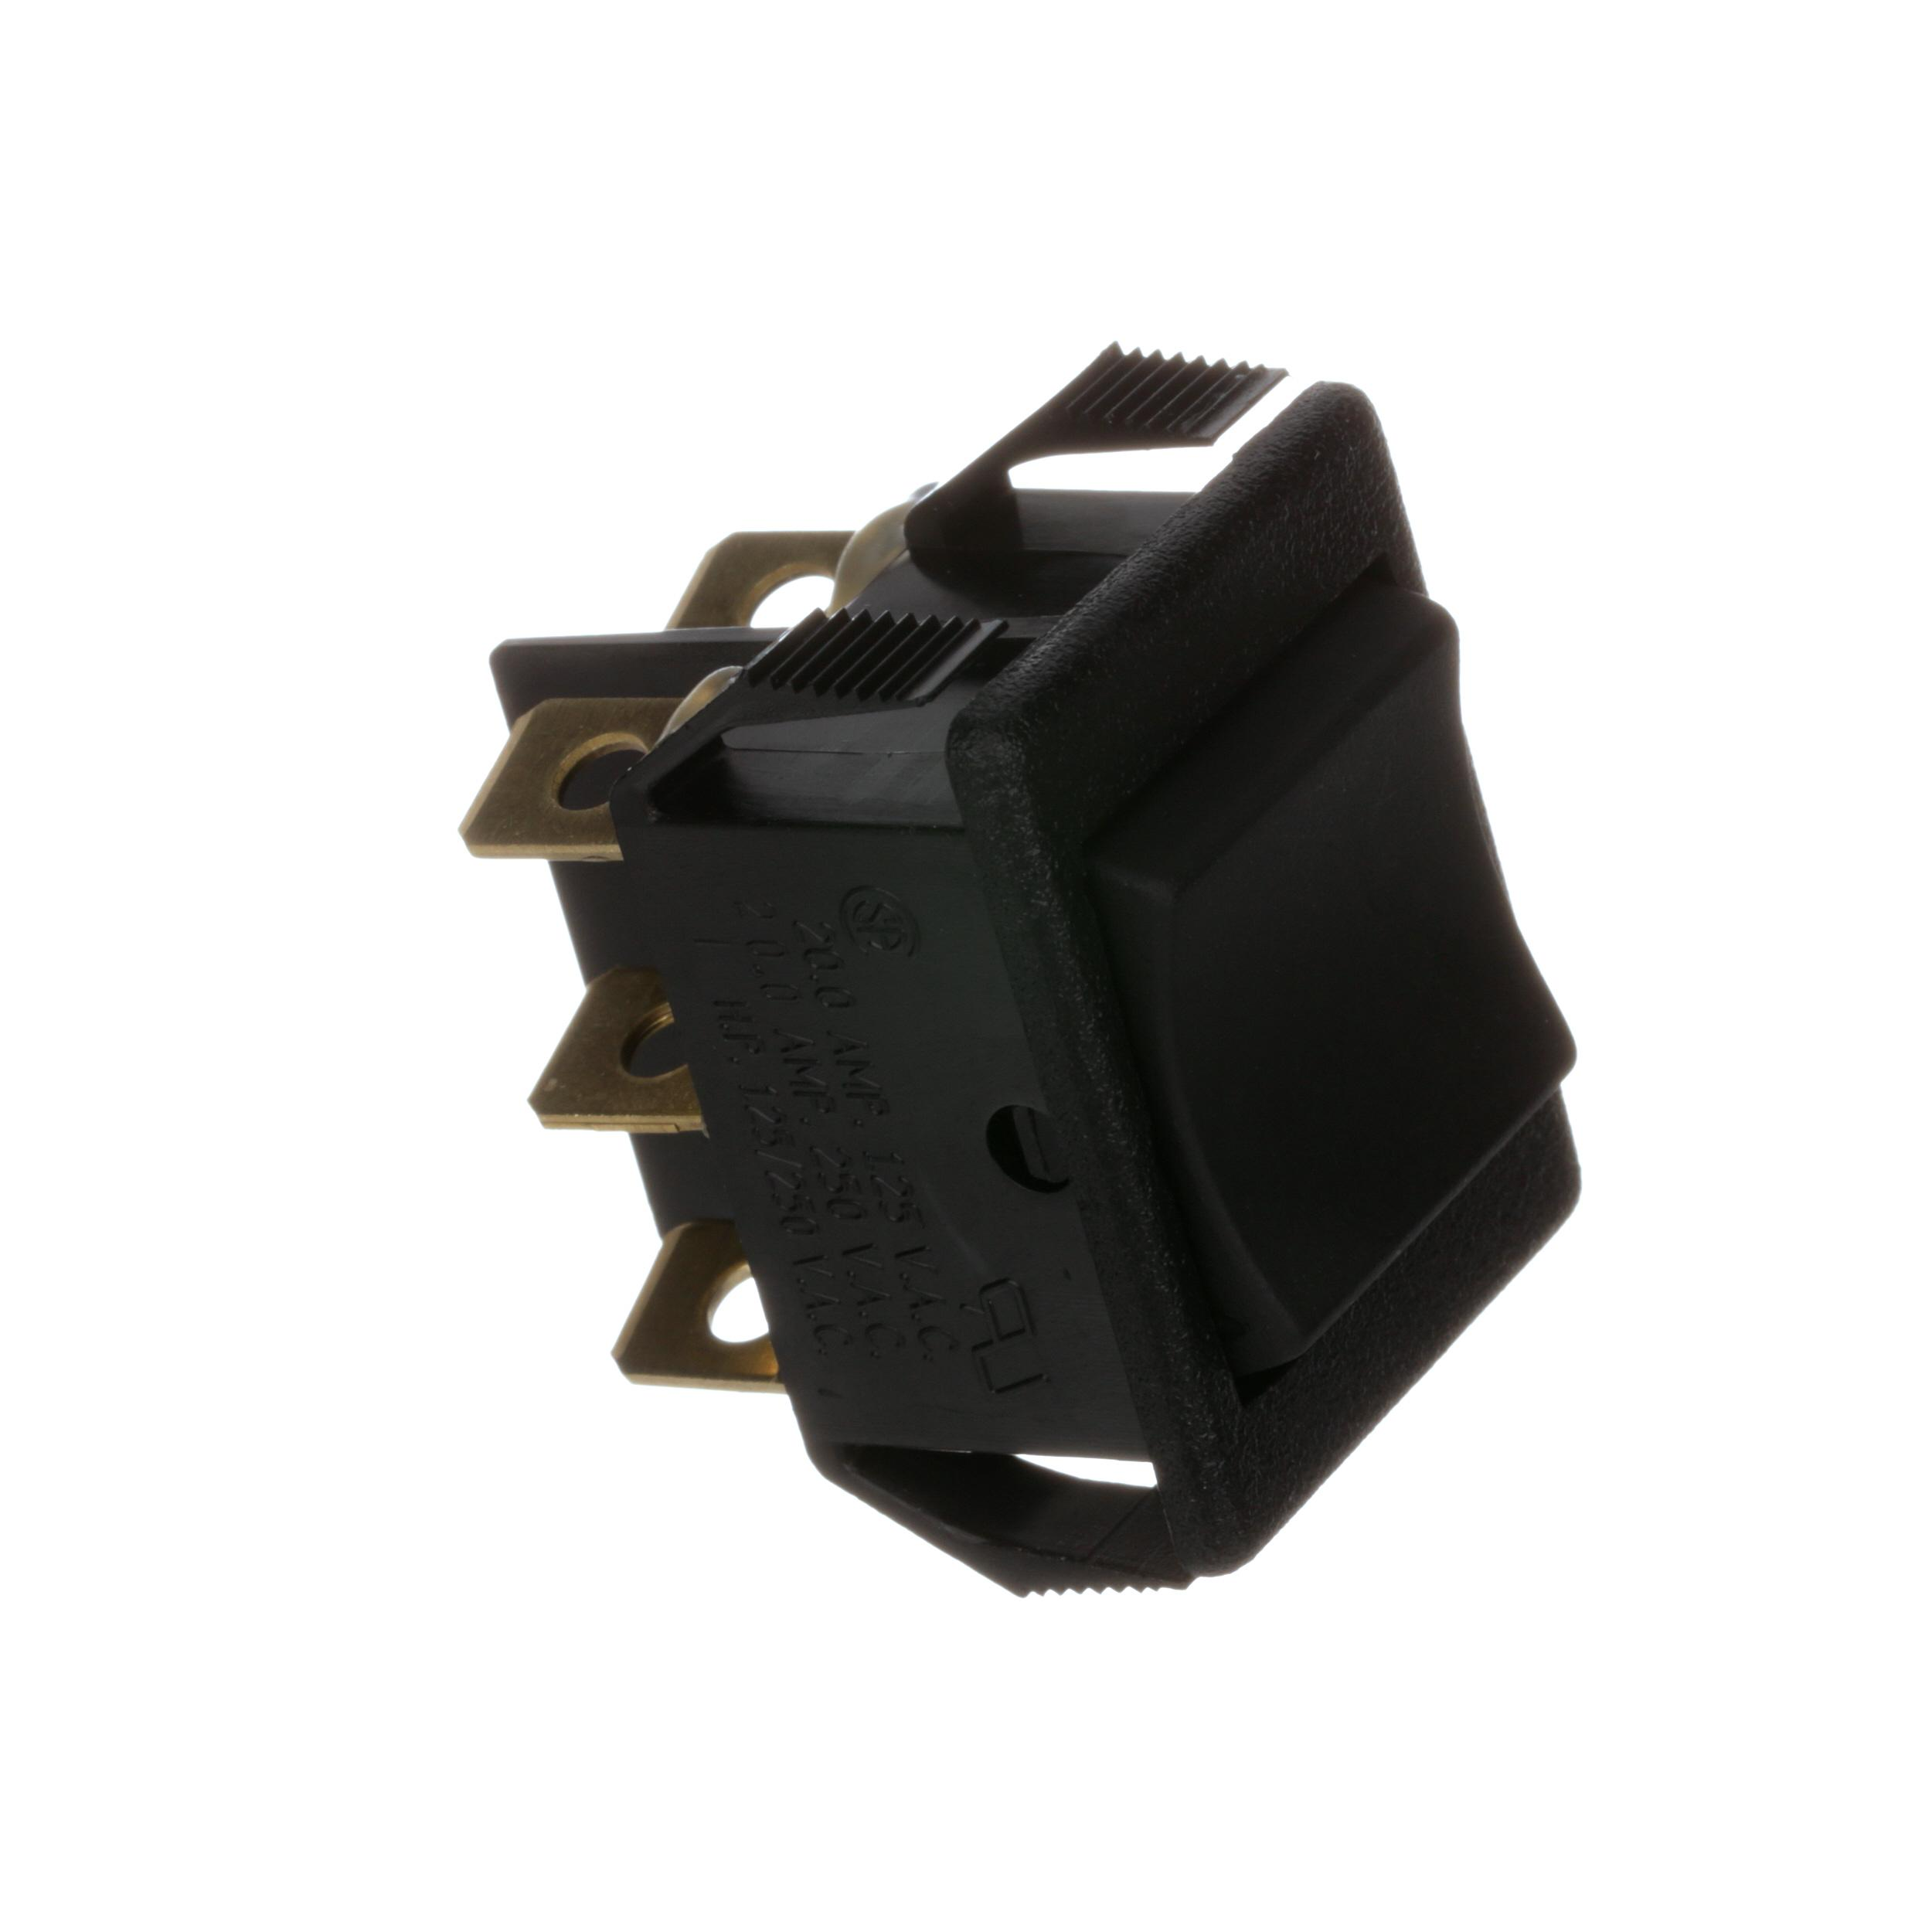 ICE-O-MATIC ROCKER SWITCH, ON/OFF/WAS